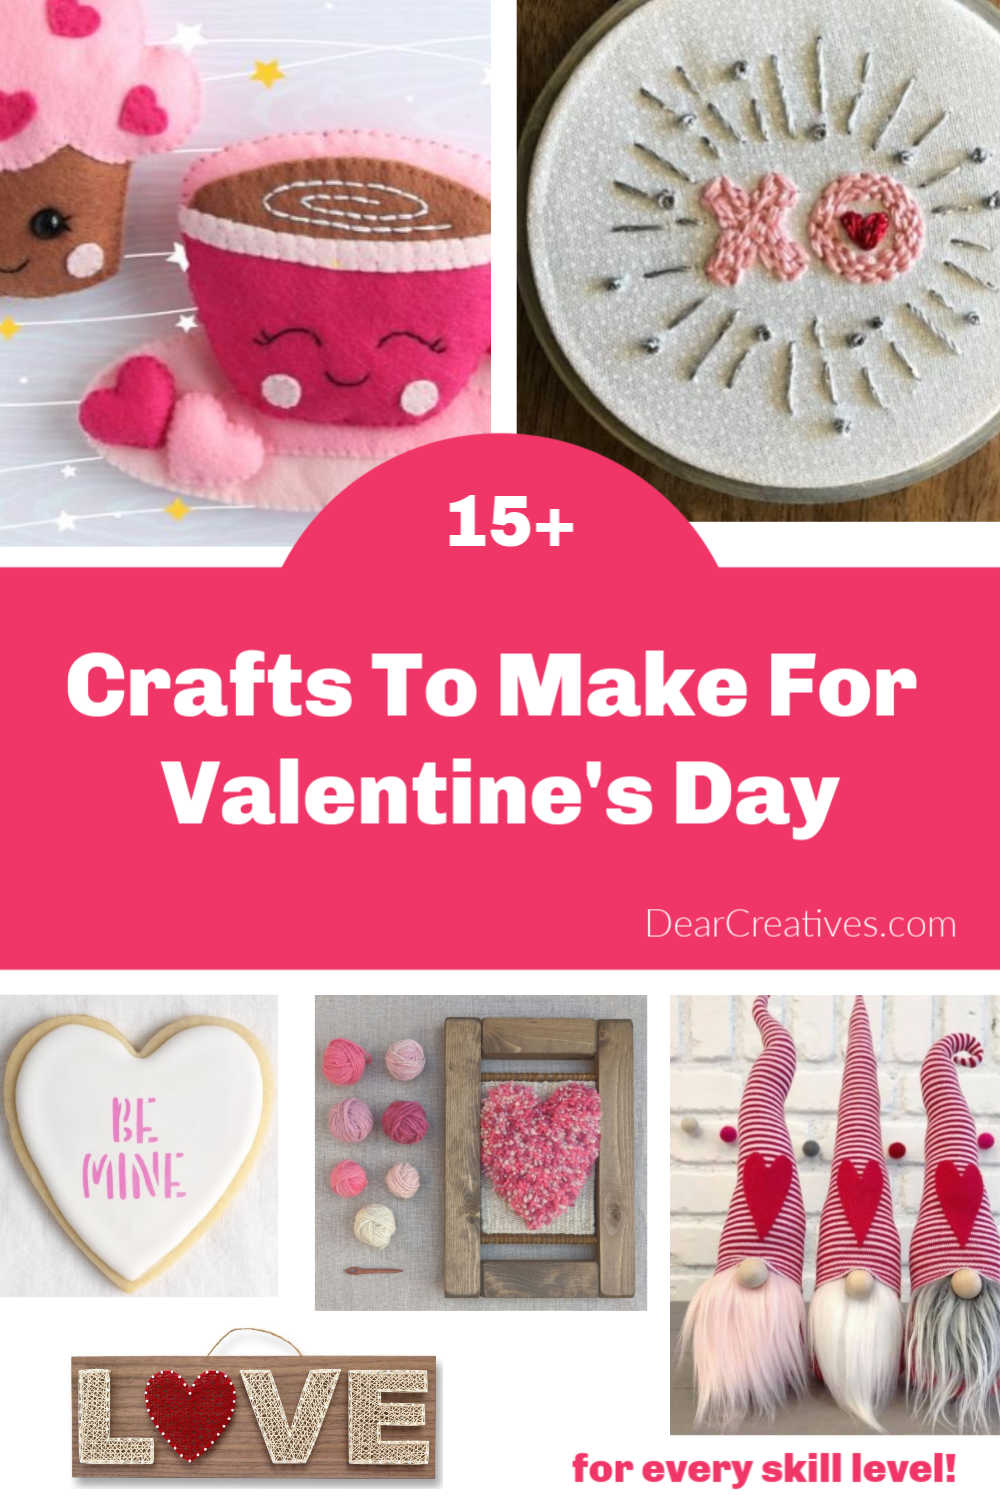 15 Crafts For Valentine's Day To Make!